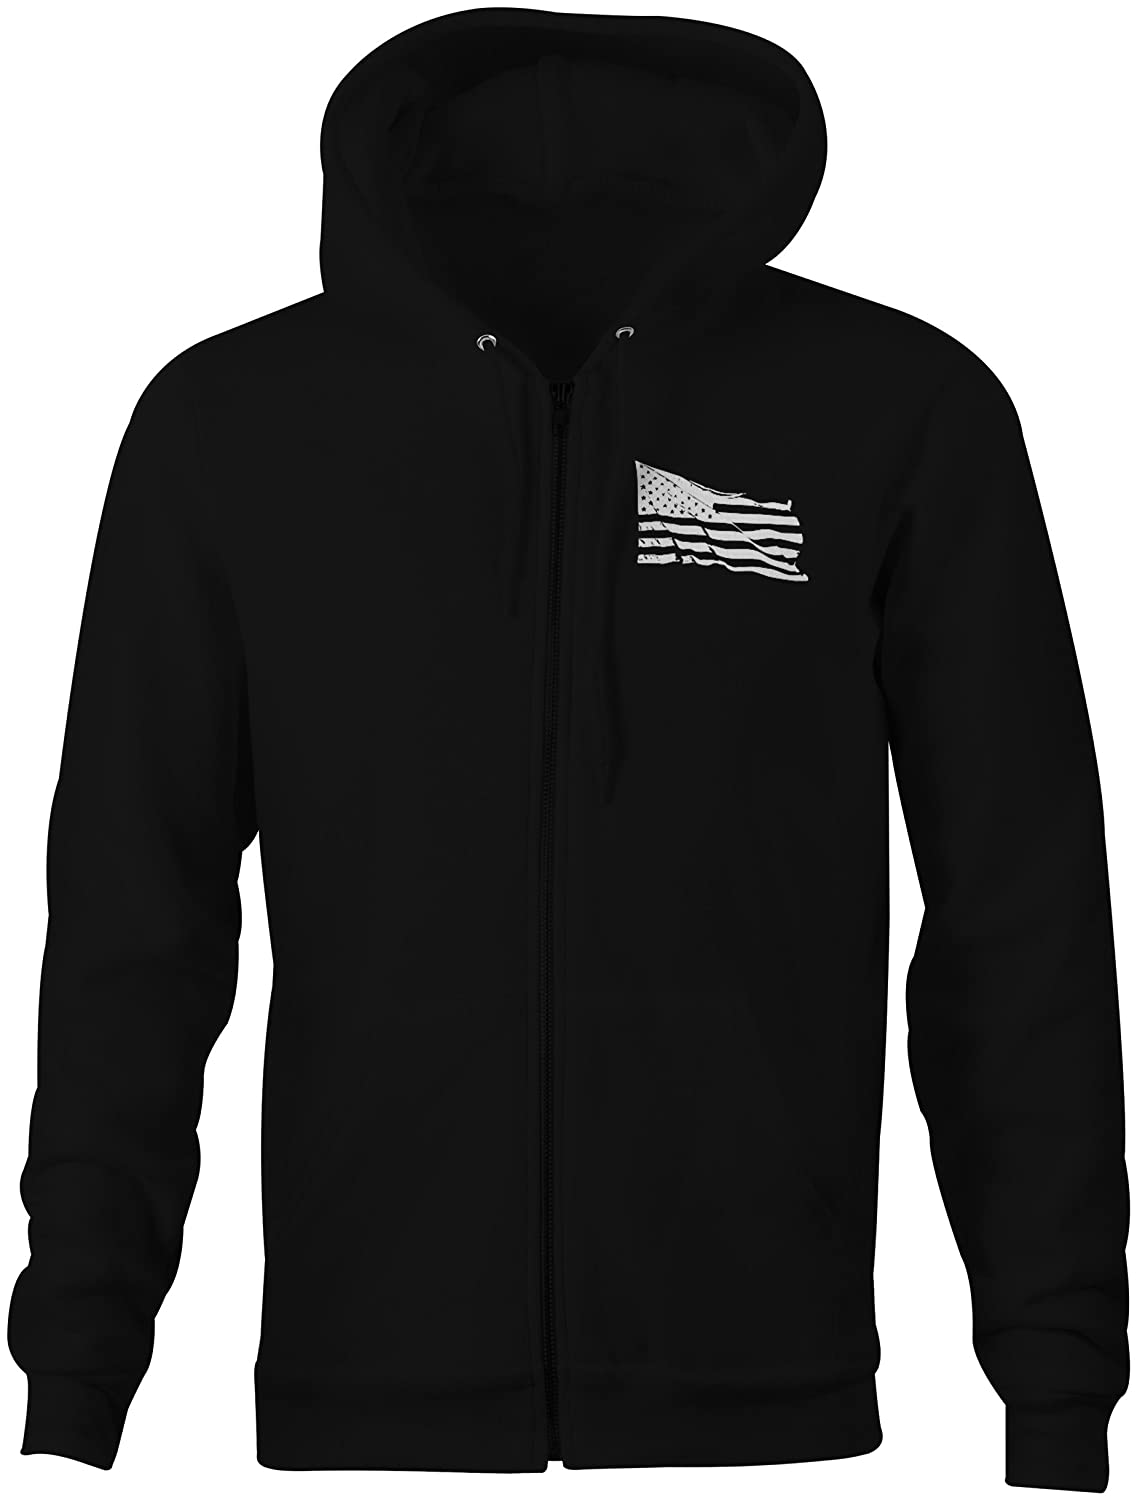 One Stop Services Zip Up Hoodie Molon Labe 2nd Amendment NRA Tactical Sweatshirt 3XL